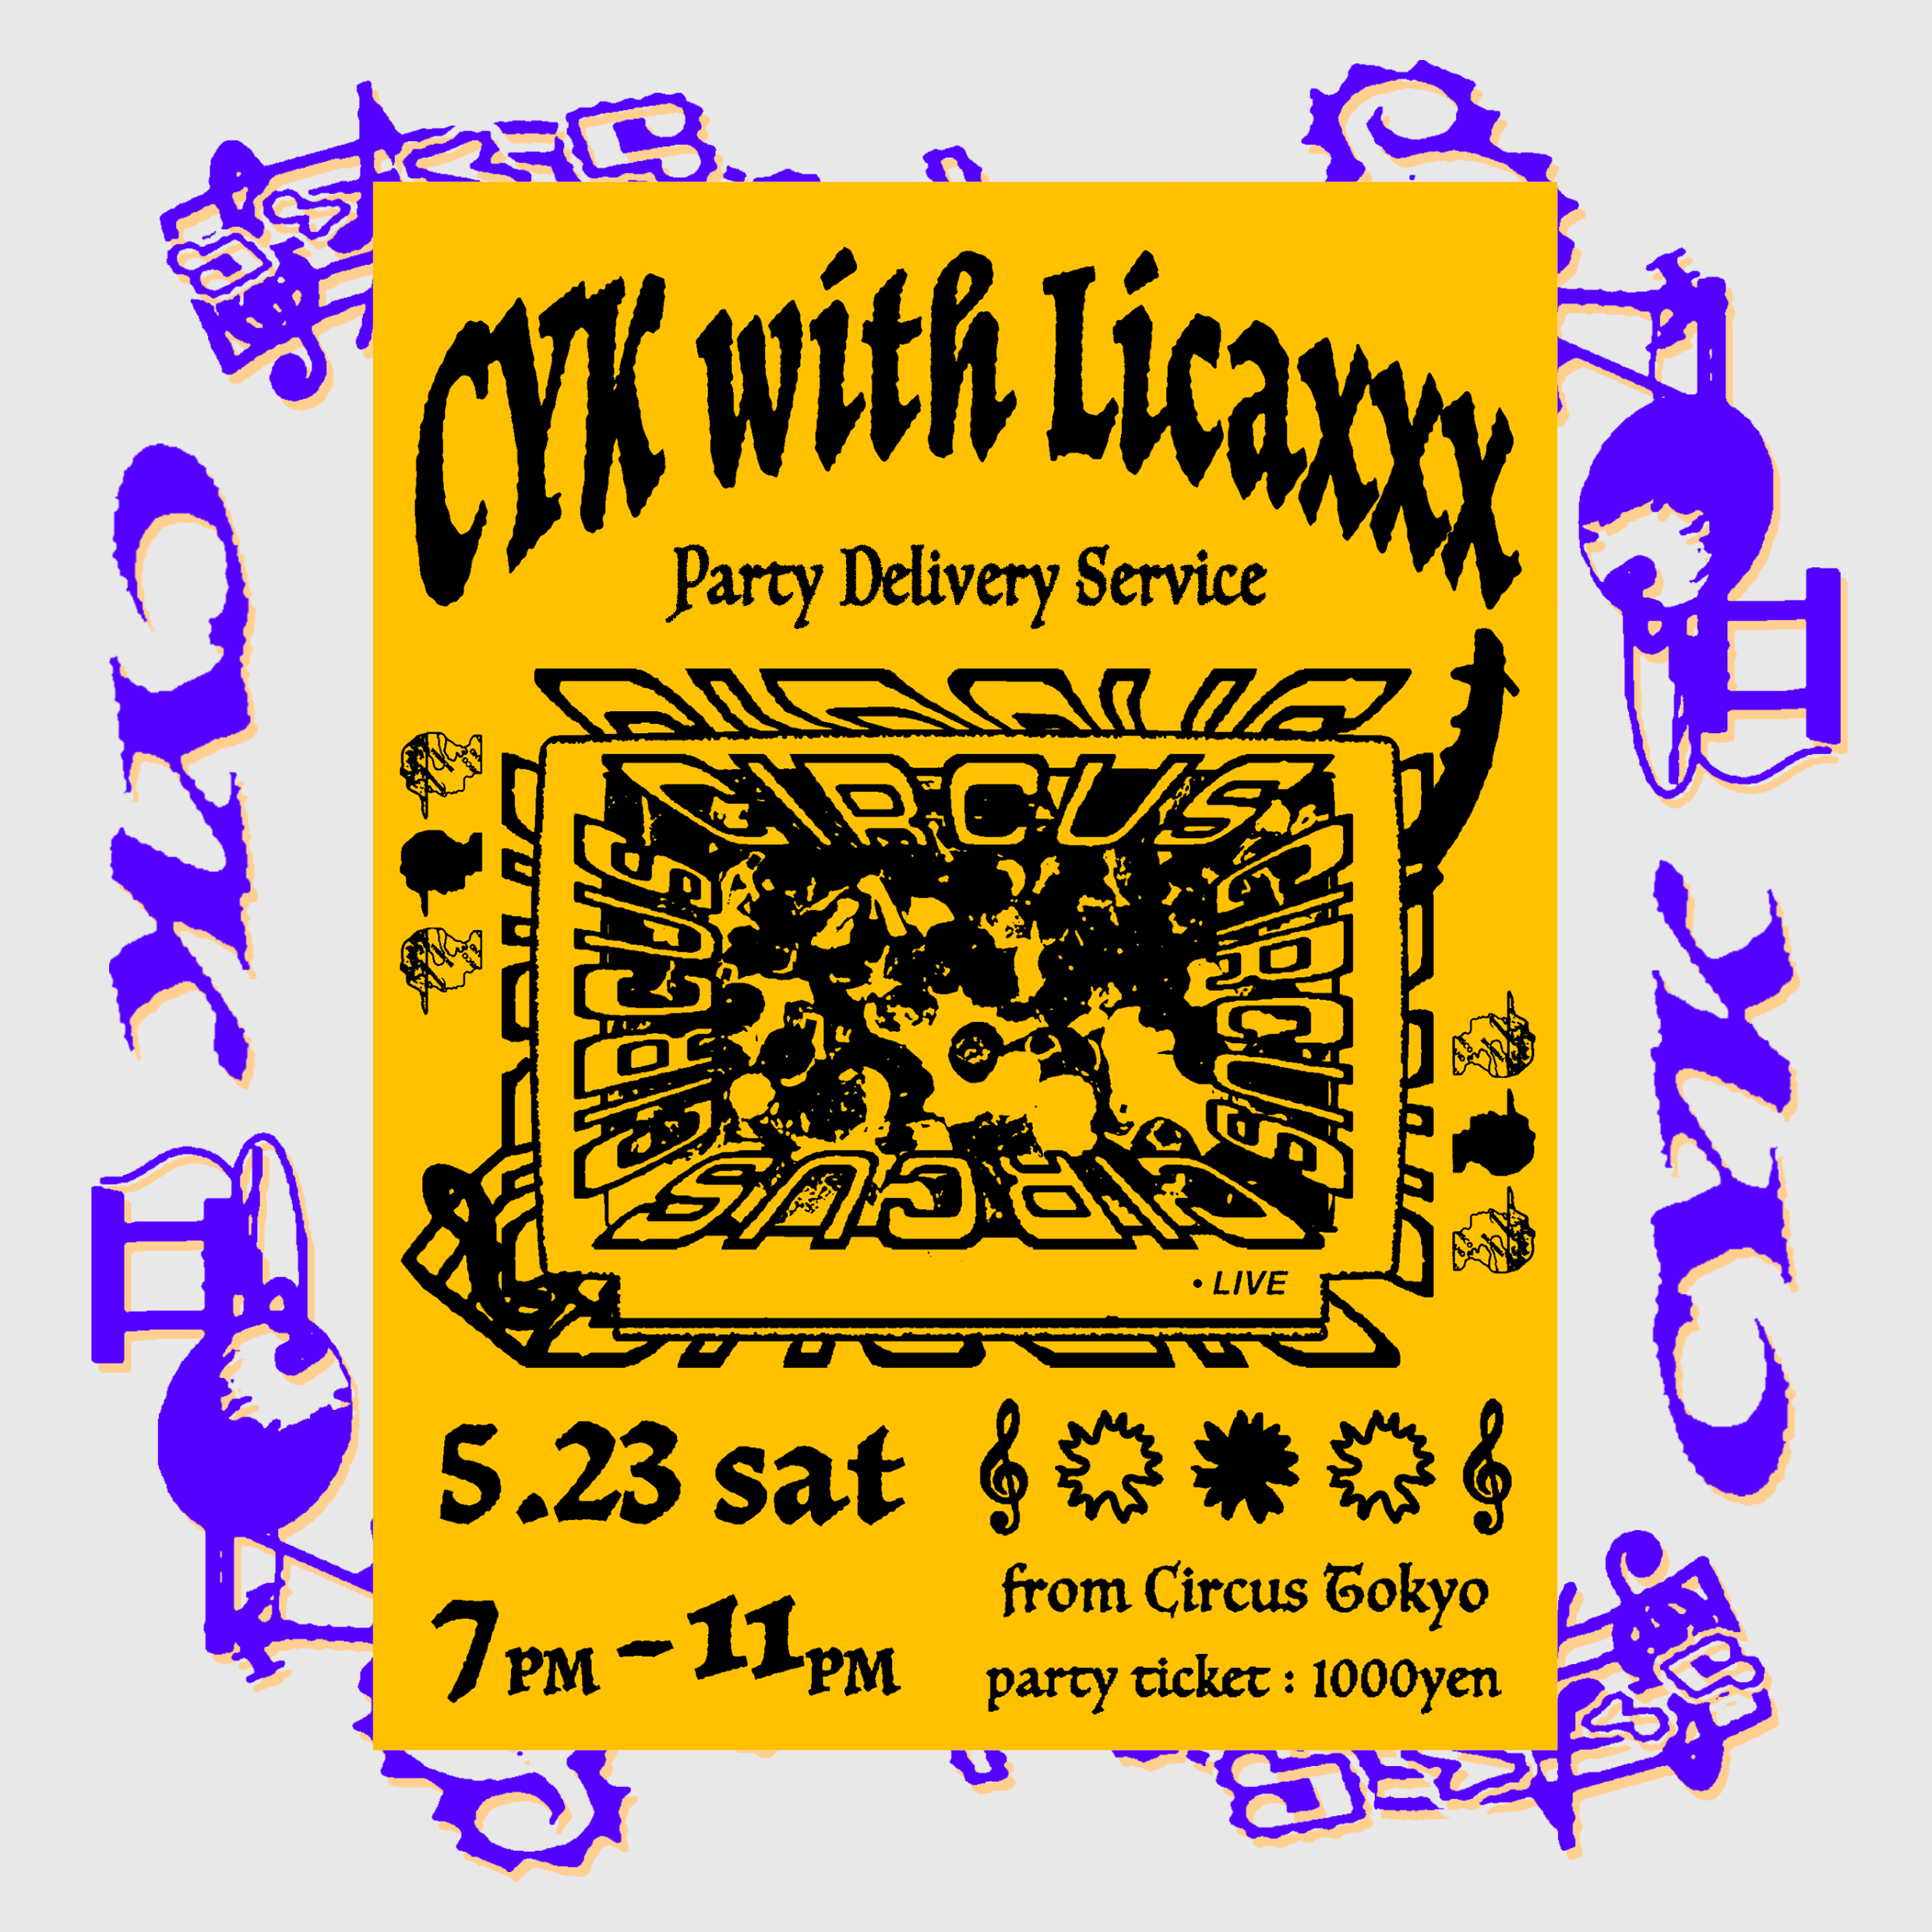 [Live Streaming] CYK with Licaxxx -Party Delivery Service-